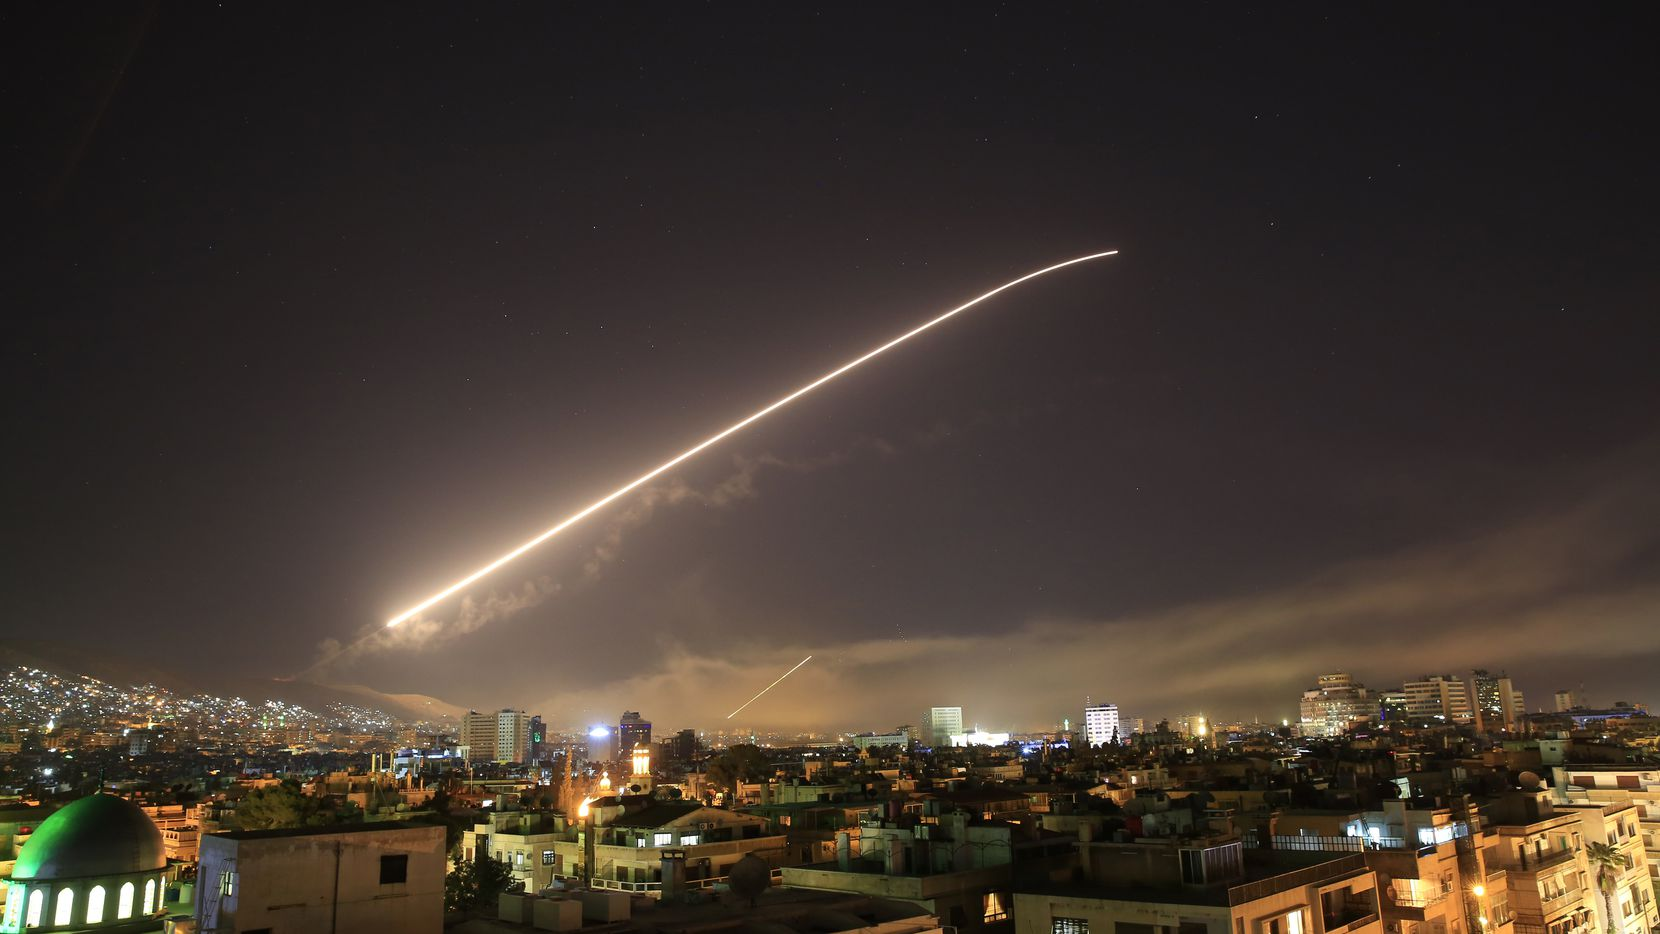 The Damascus sky lights up with missile fire as the U.S. launches an attack on Syria.